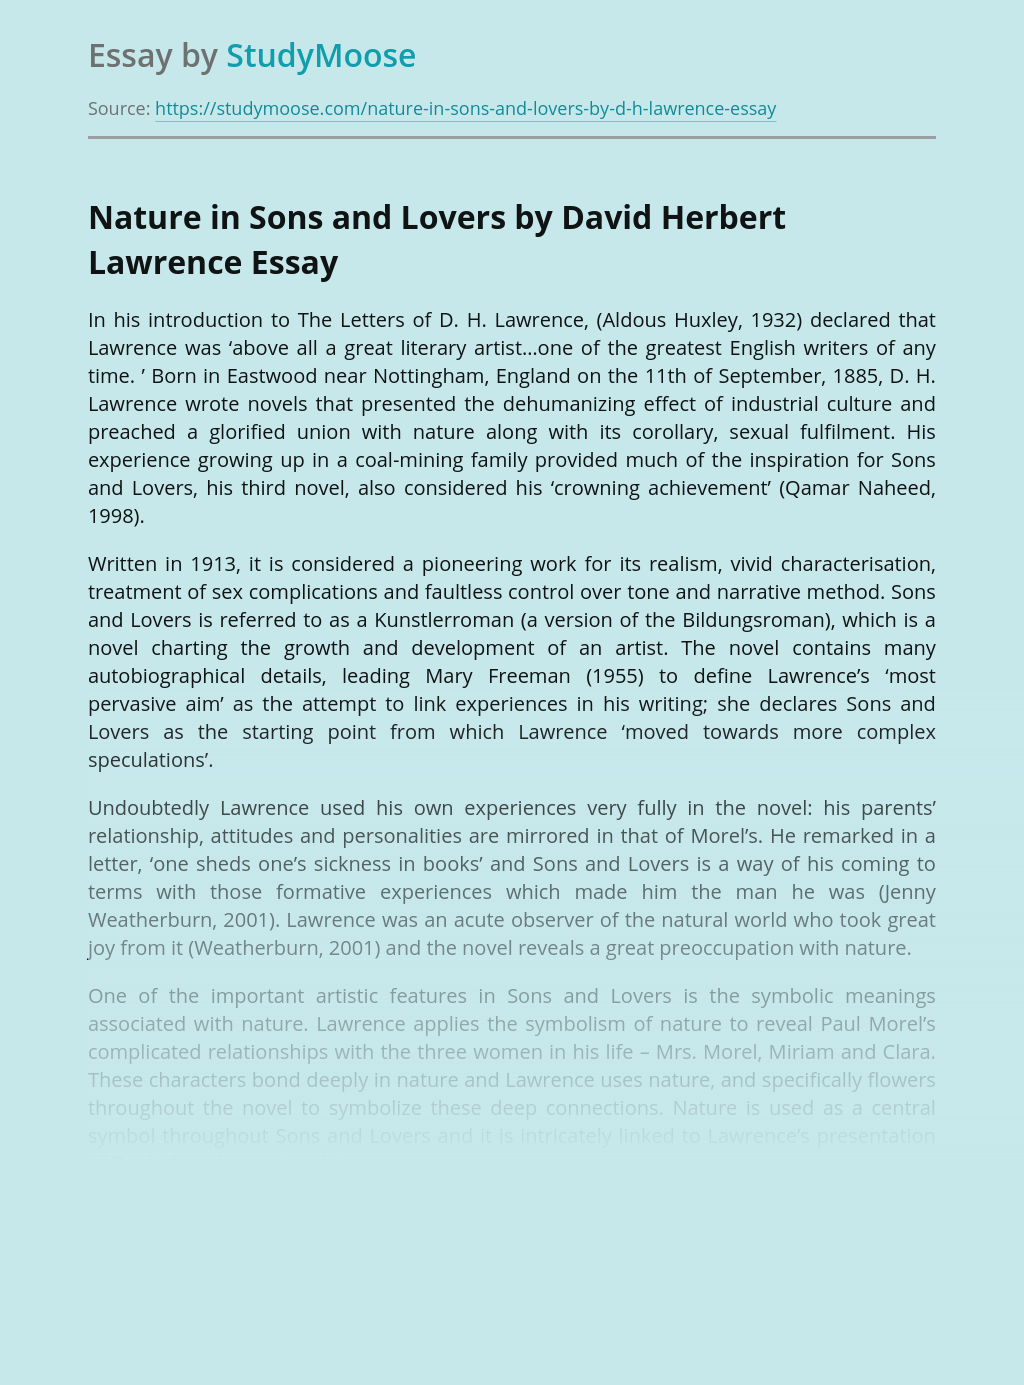 Nature in Sons and Lovers by David Herbert Lawrence